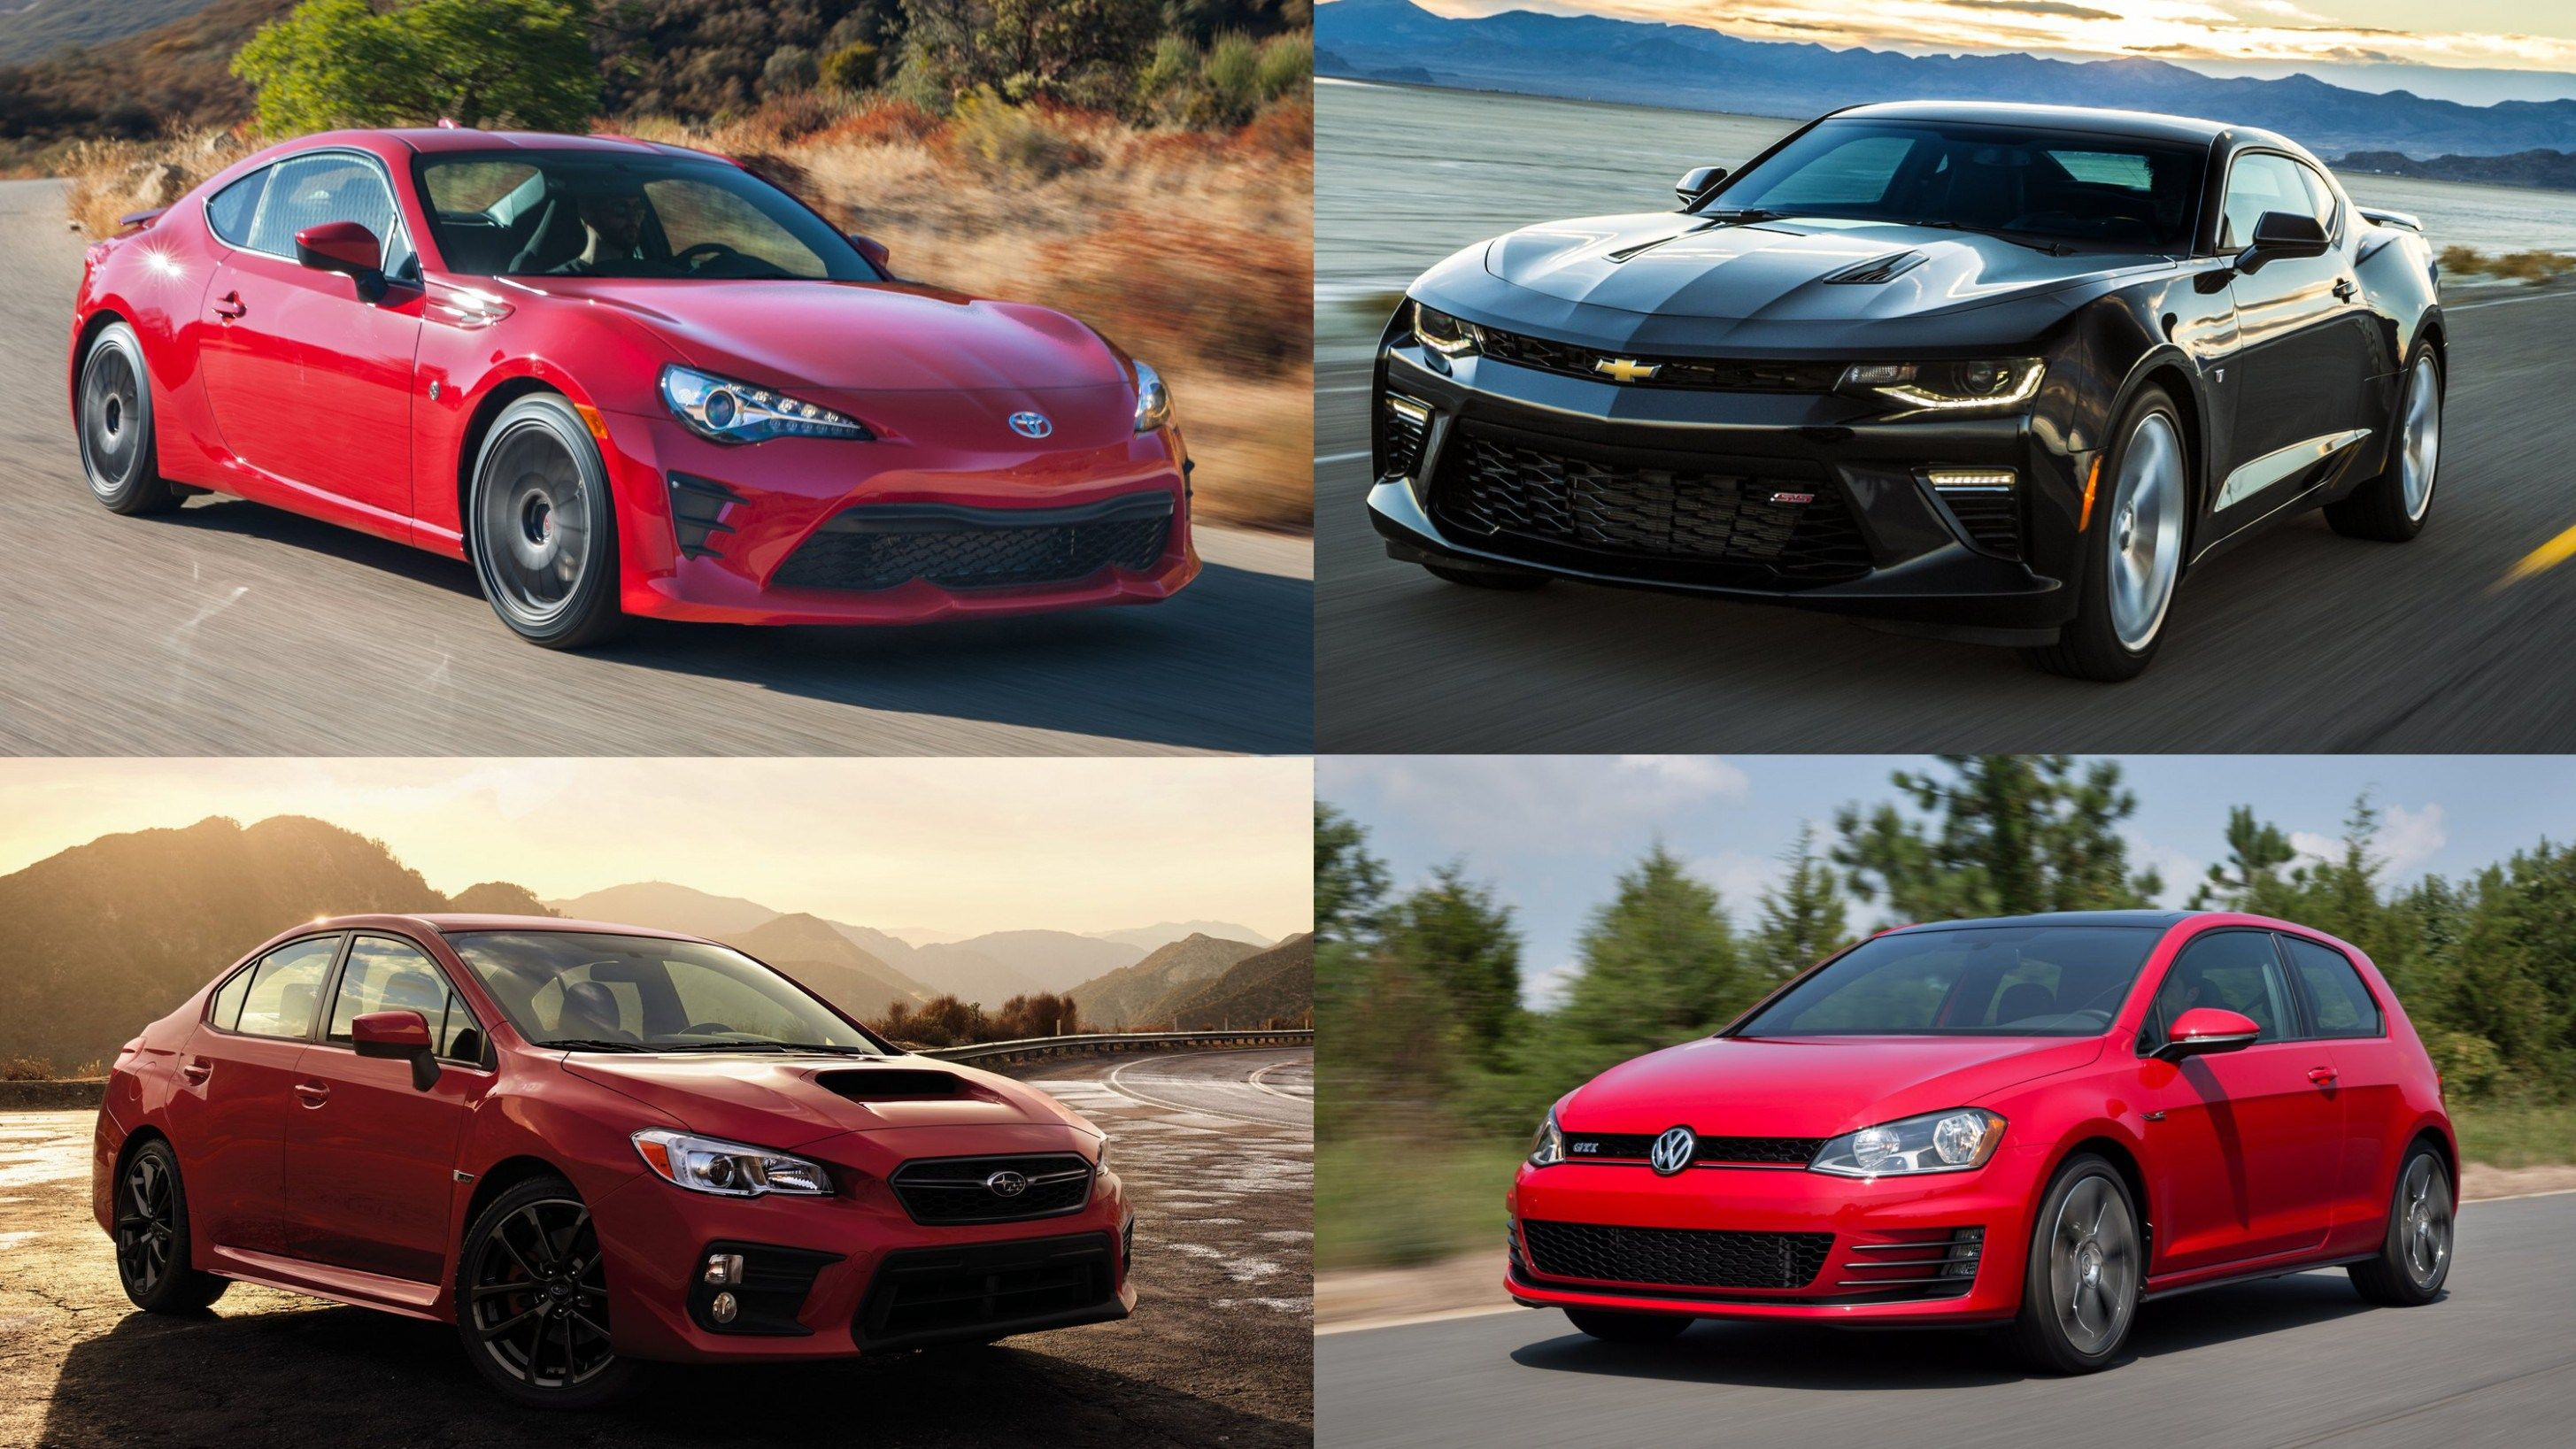 medium resolution of whats so trendy about affordable sporty cars that everyone went crazy over it affordable